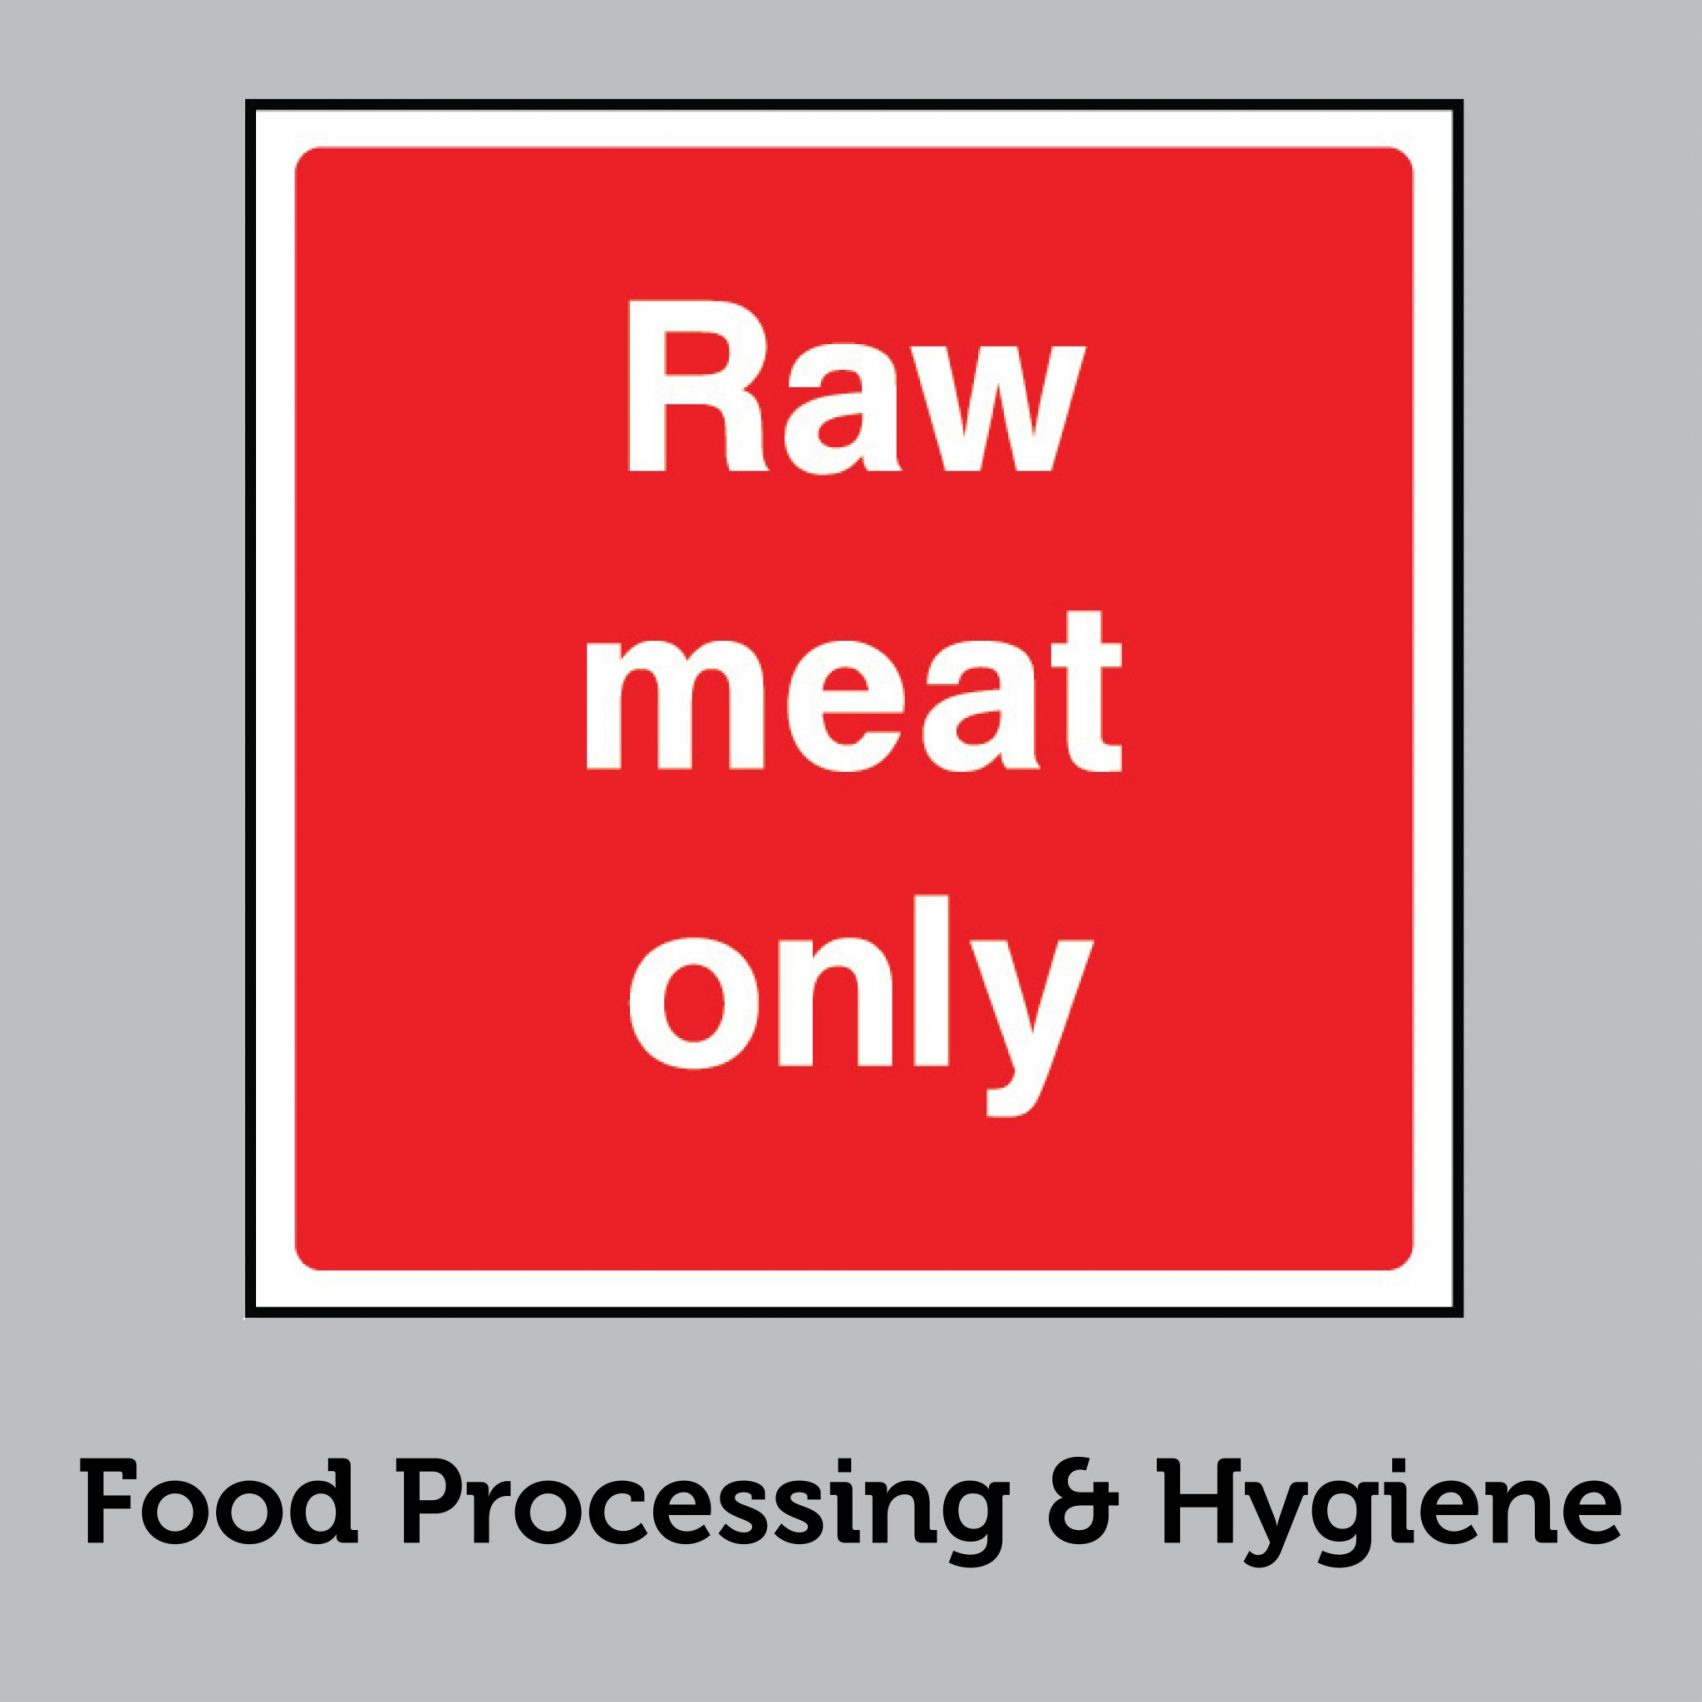 Food Processing & Hygiene